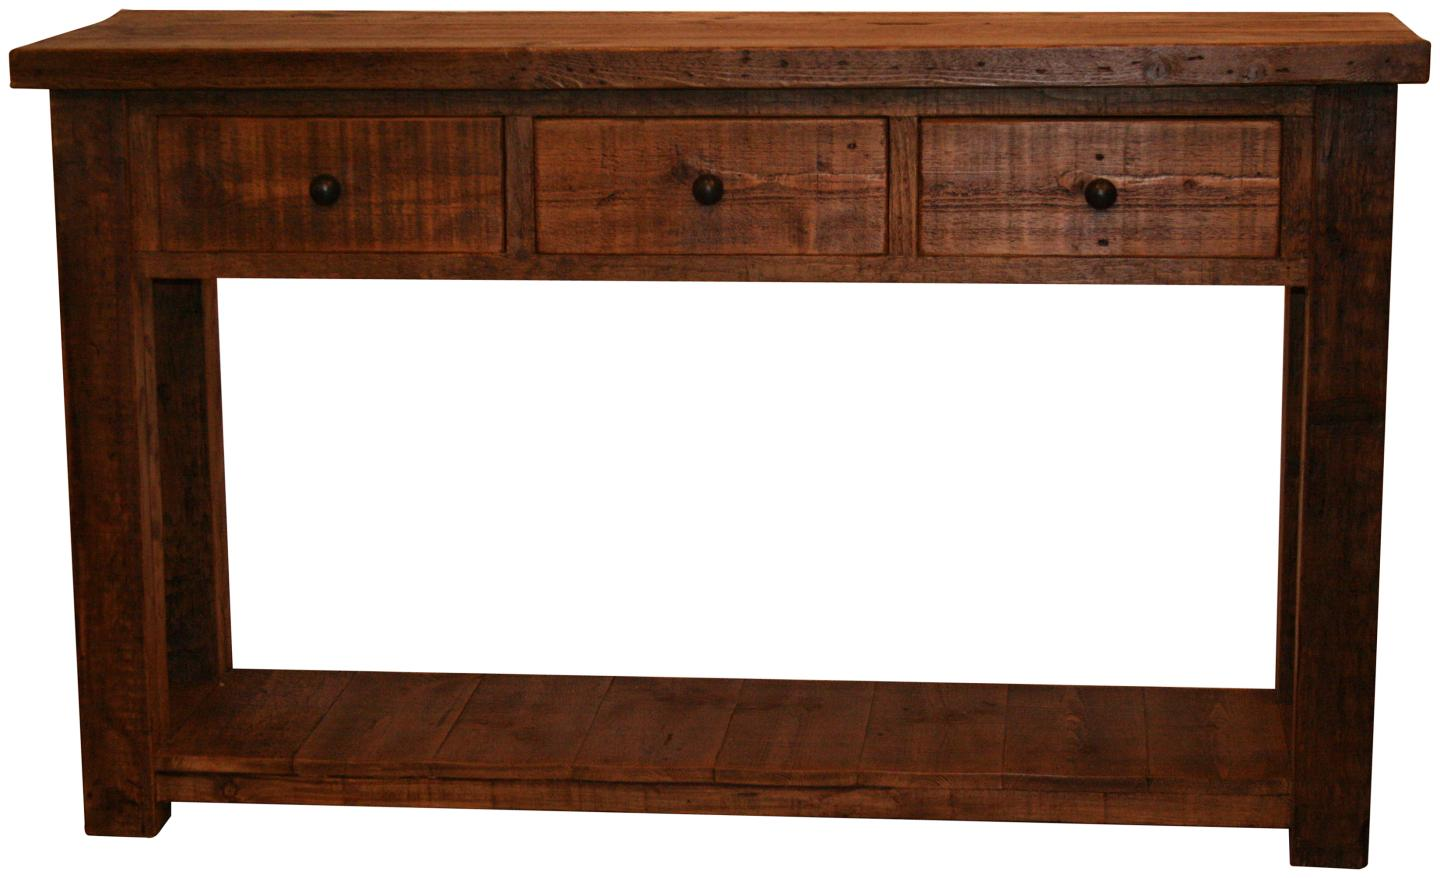 Original 5 foot console table consoles living for 5 foot console table